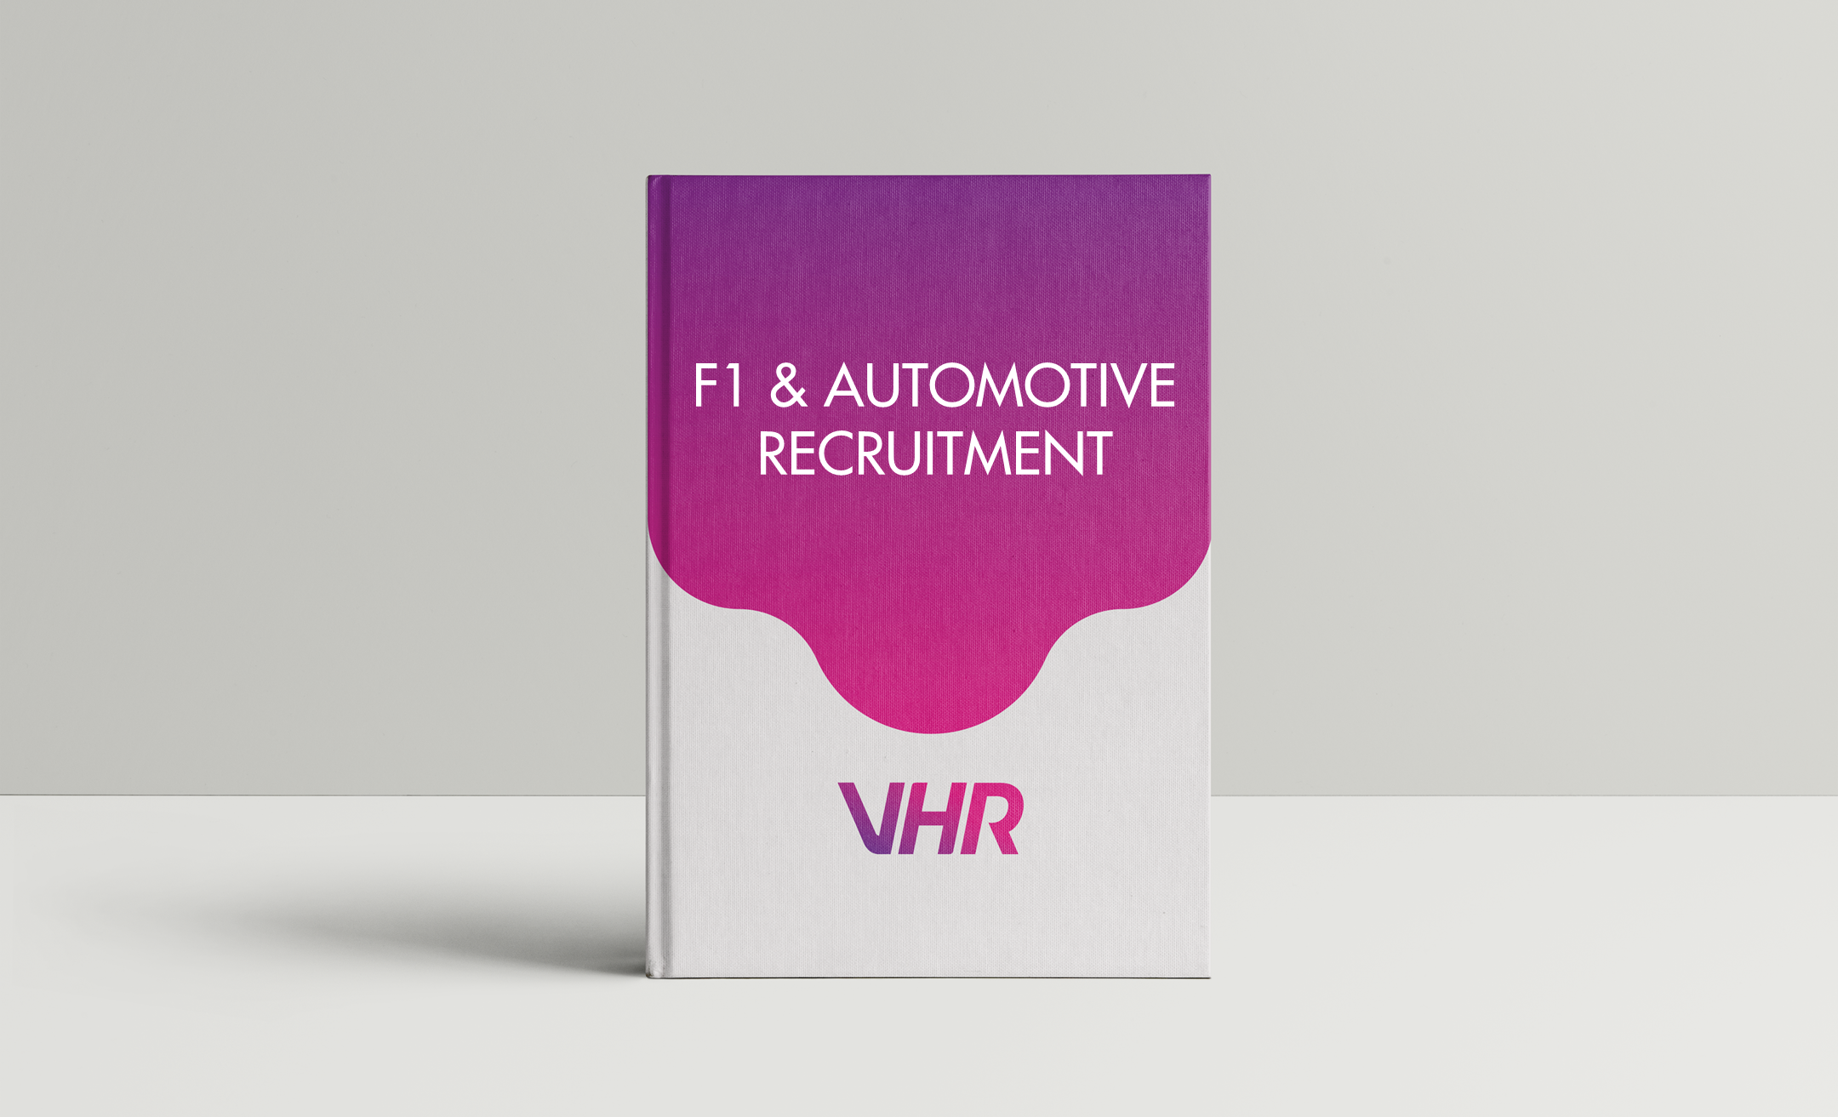 F1 & Automotive Recruitment Services Booklet